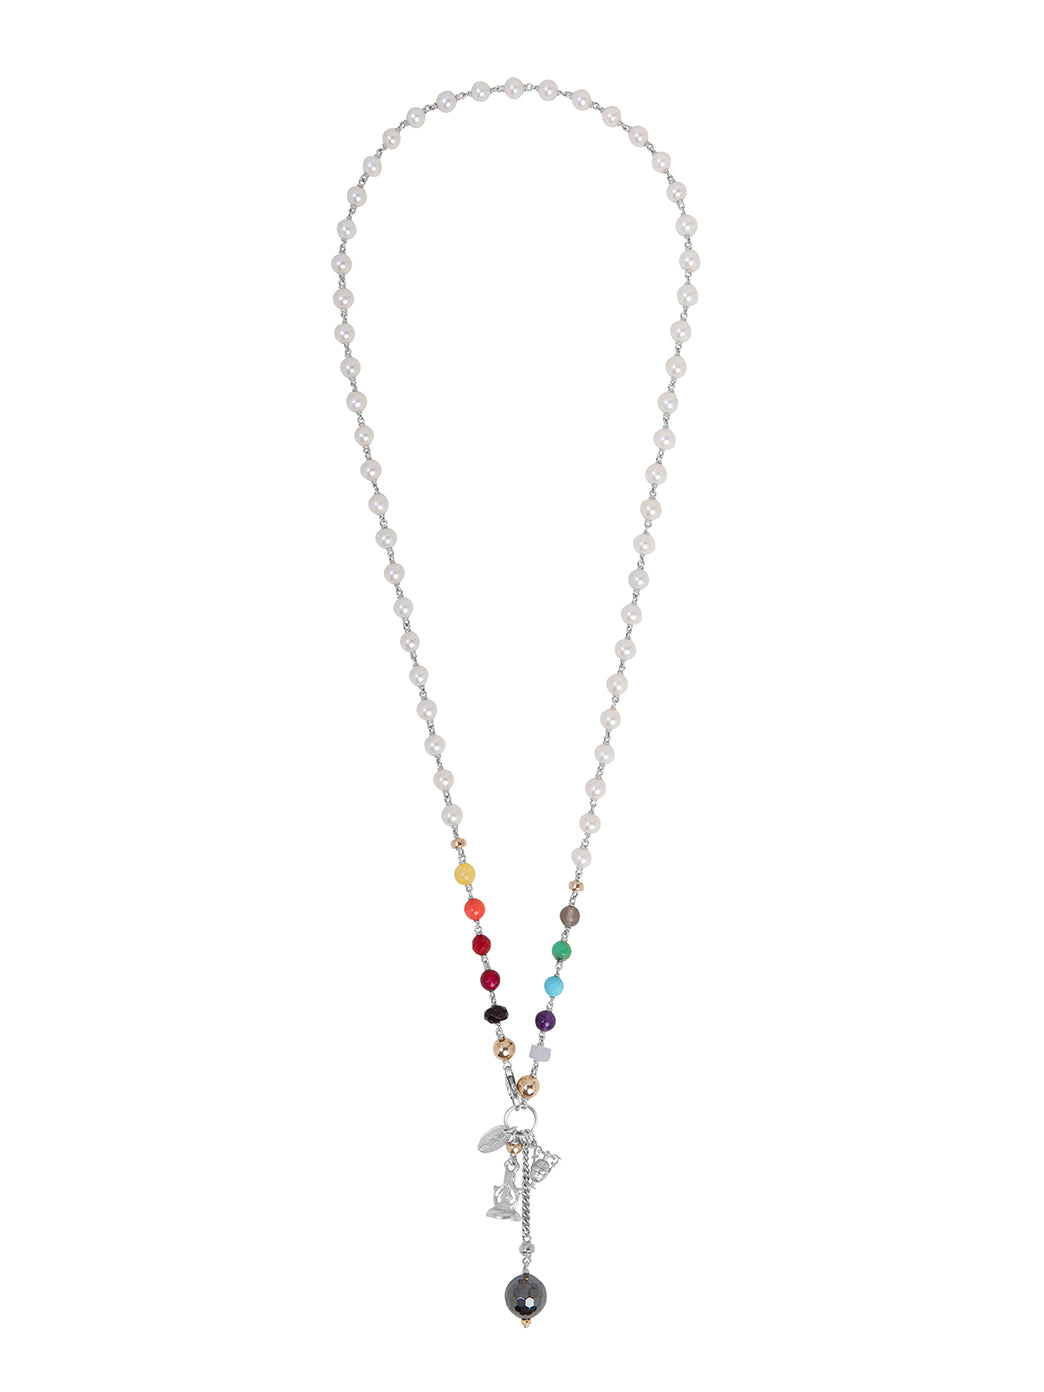 Fiorina Jewellery Rosalina Necklace Pearl